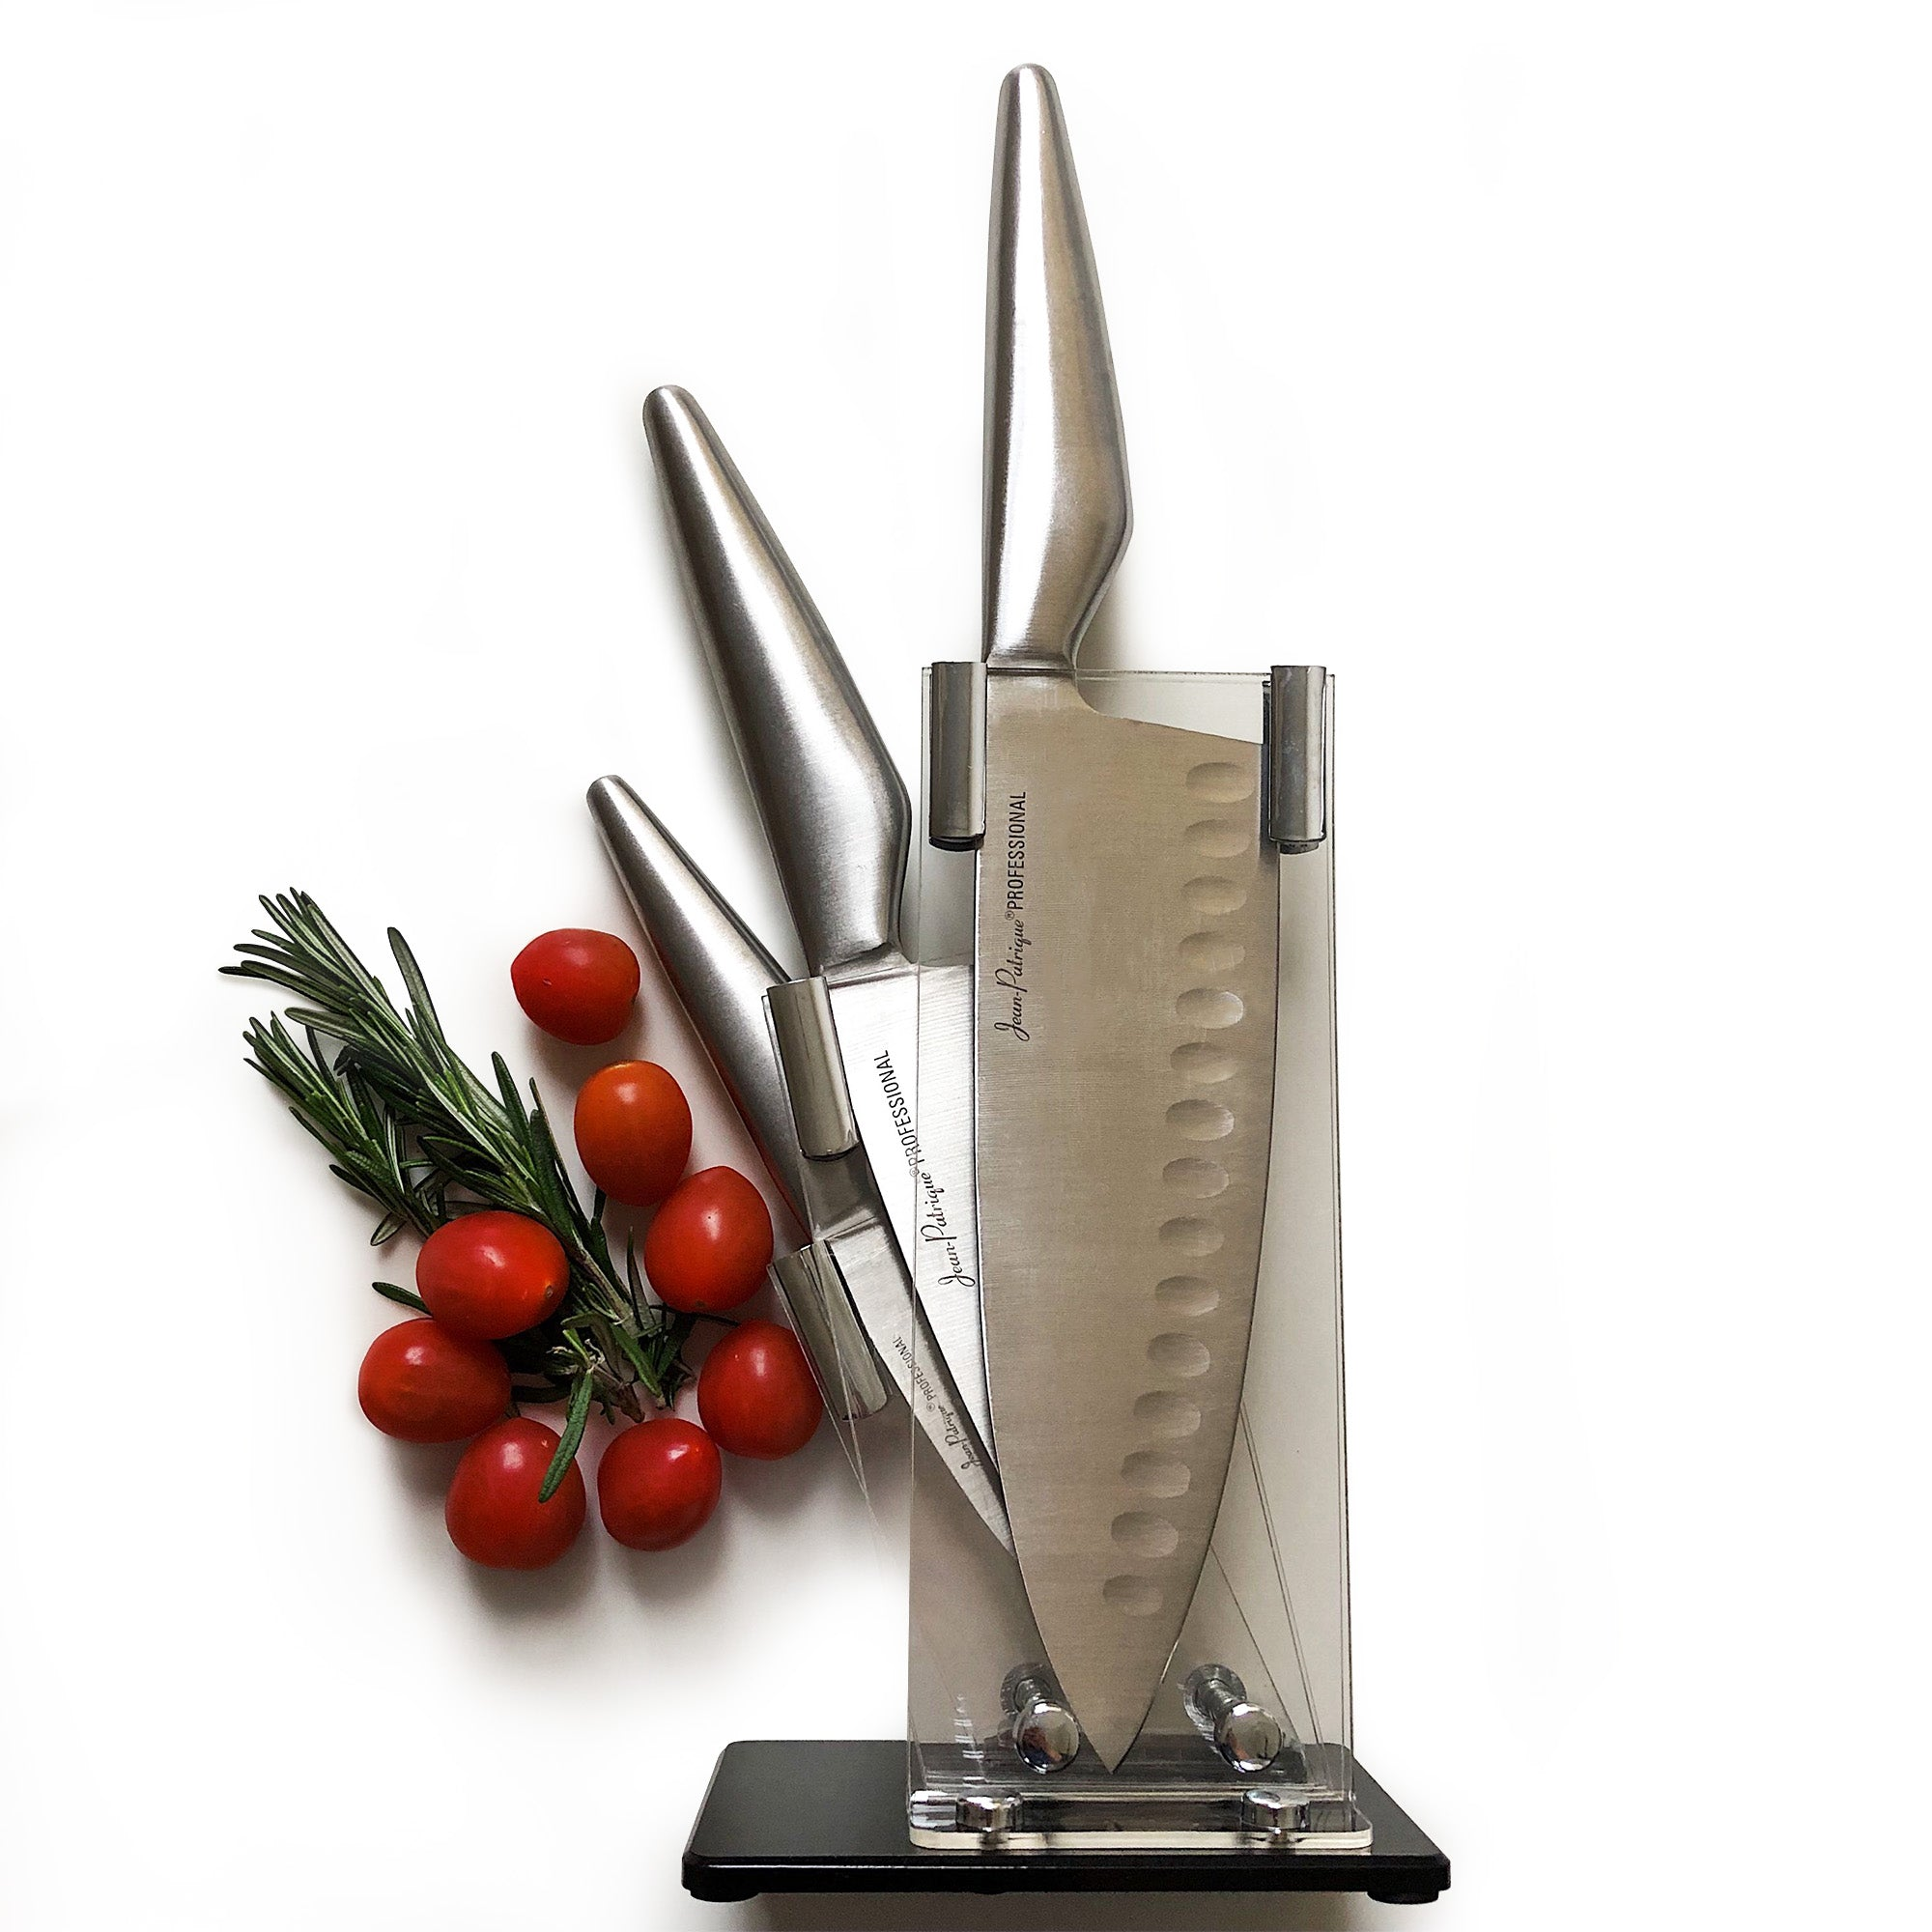 Perspex Knife Block for the Jean Patrique Signature 3-Piece Knife Set